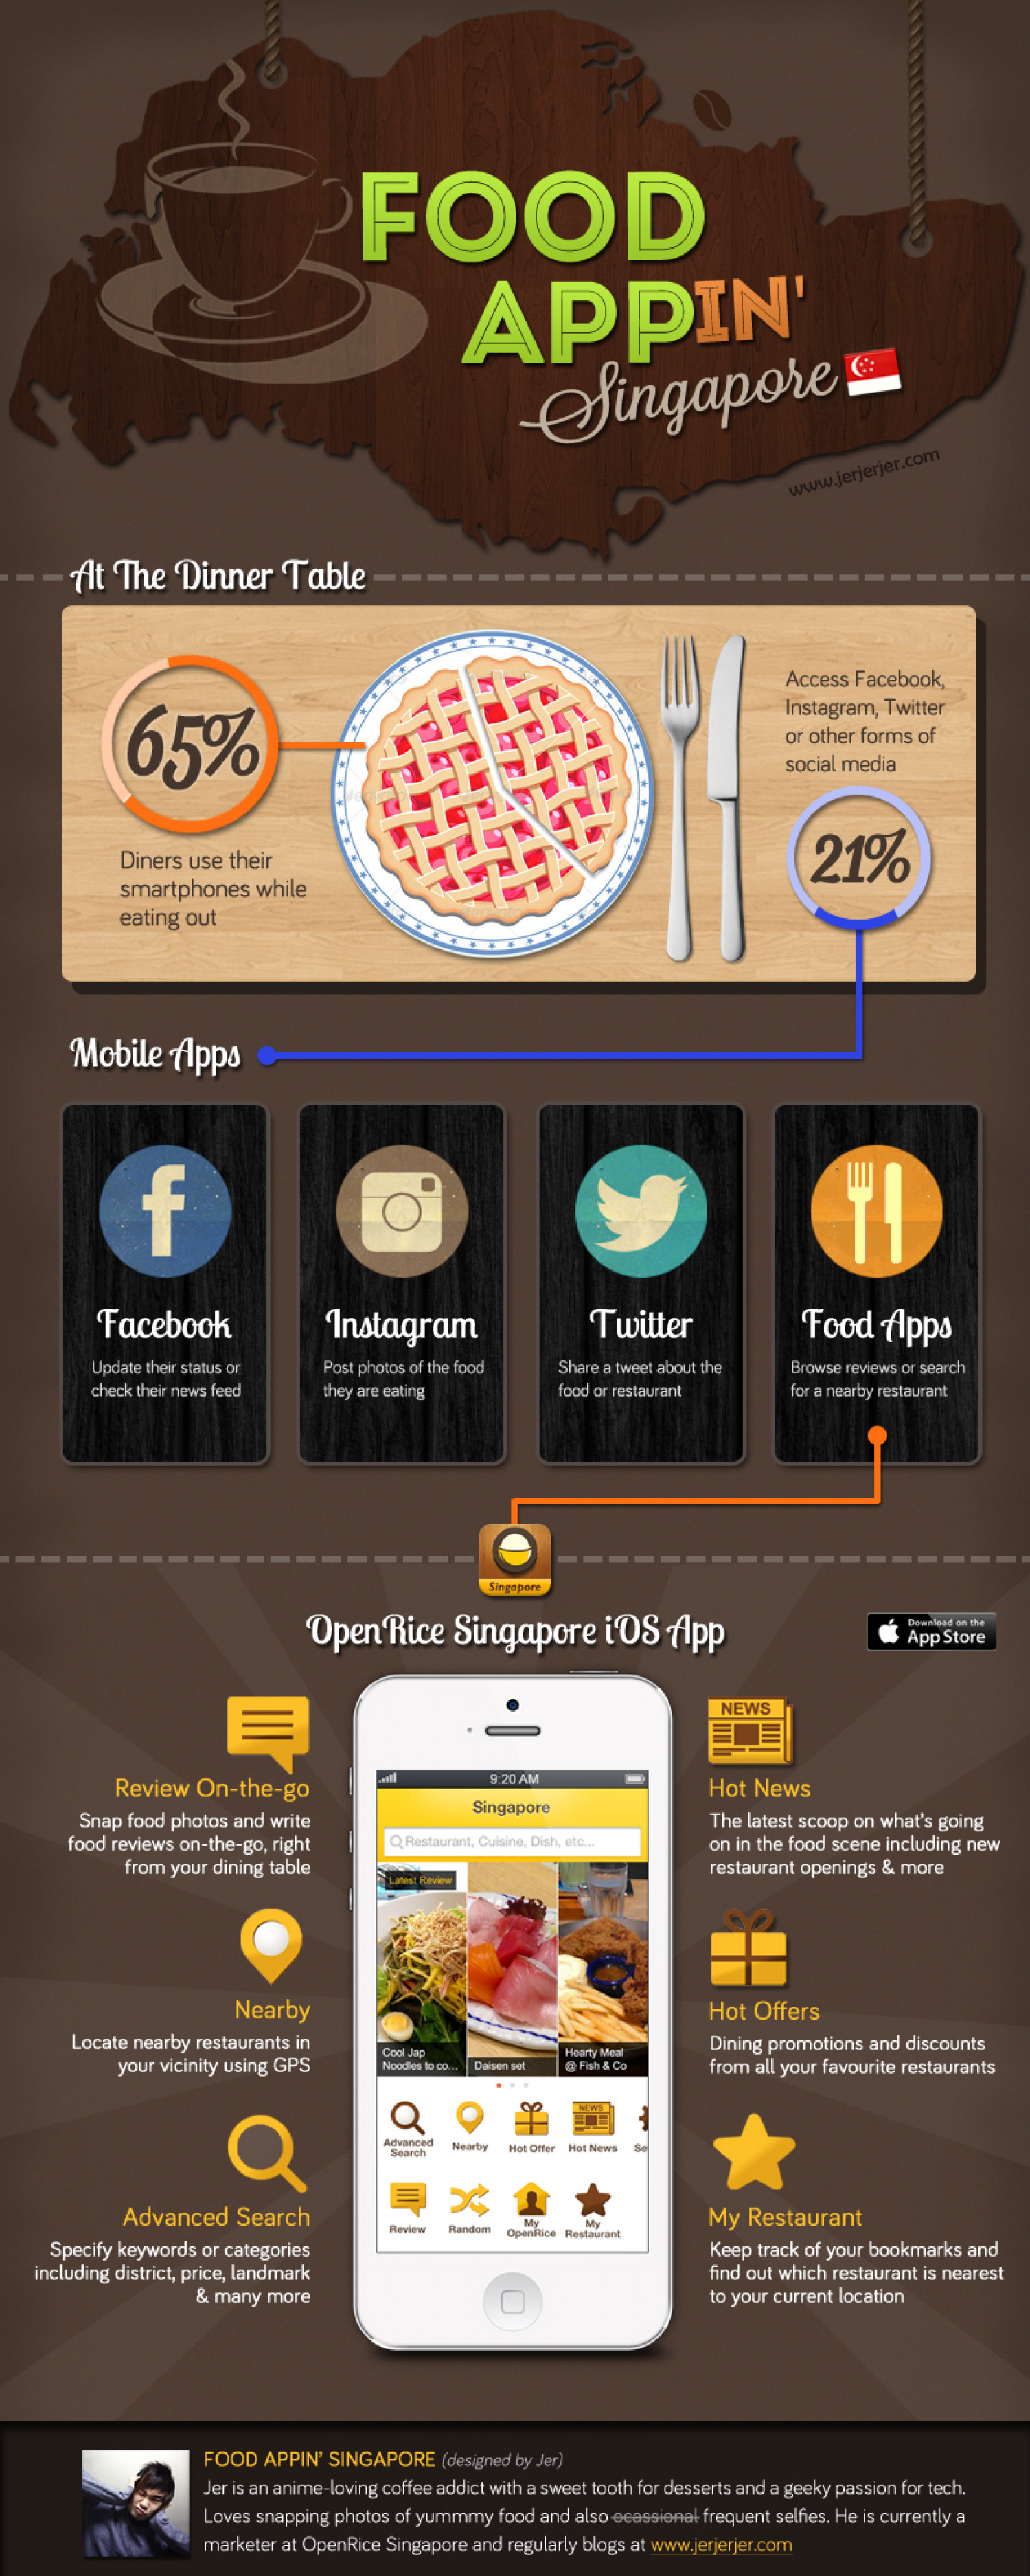 Food Appin' Singapore Infographic